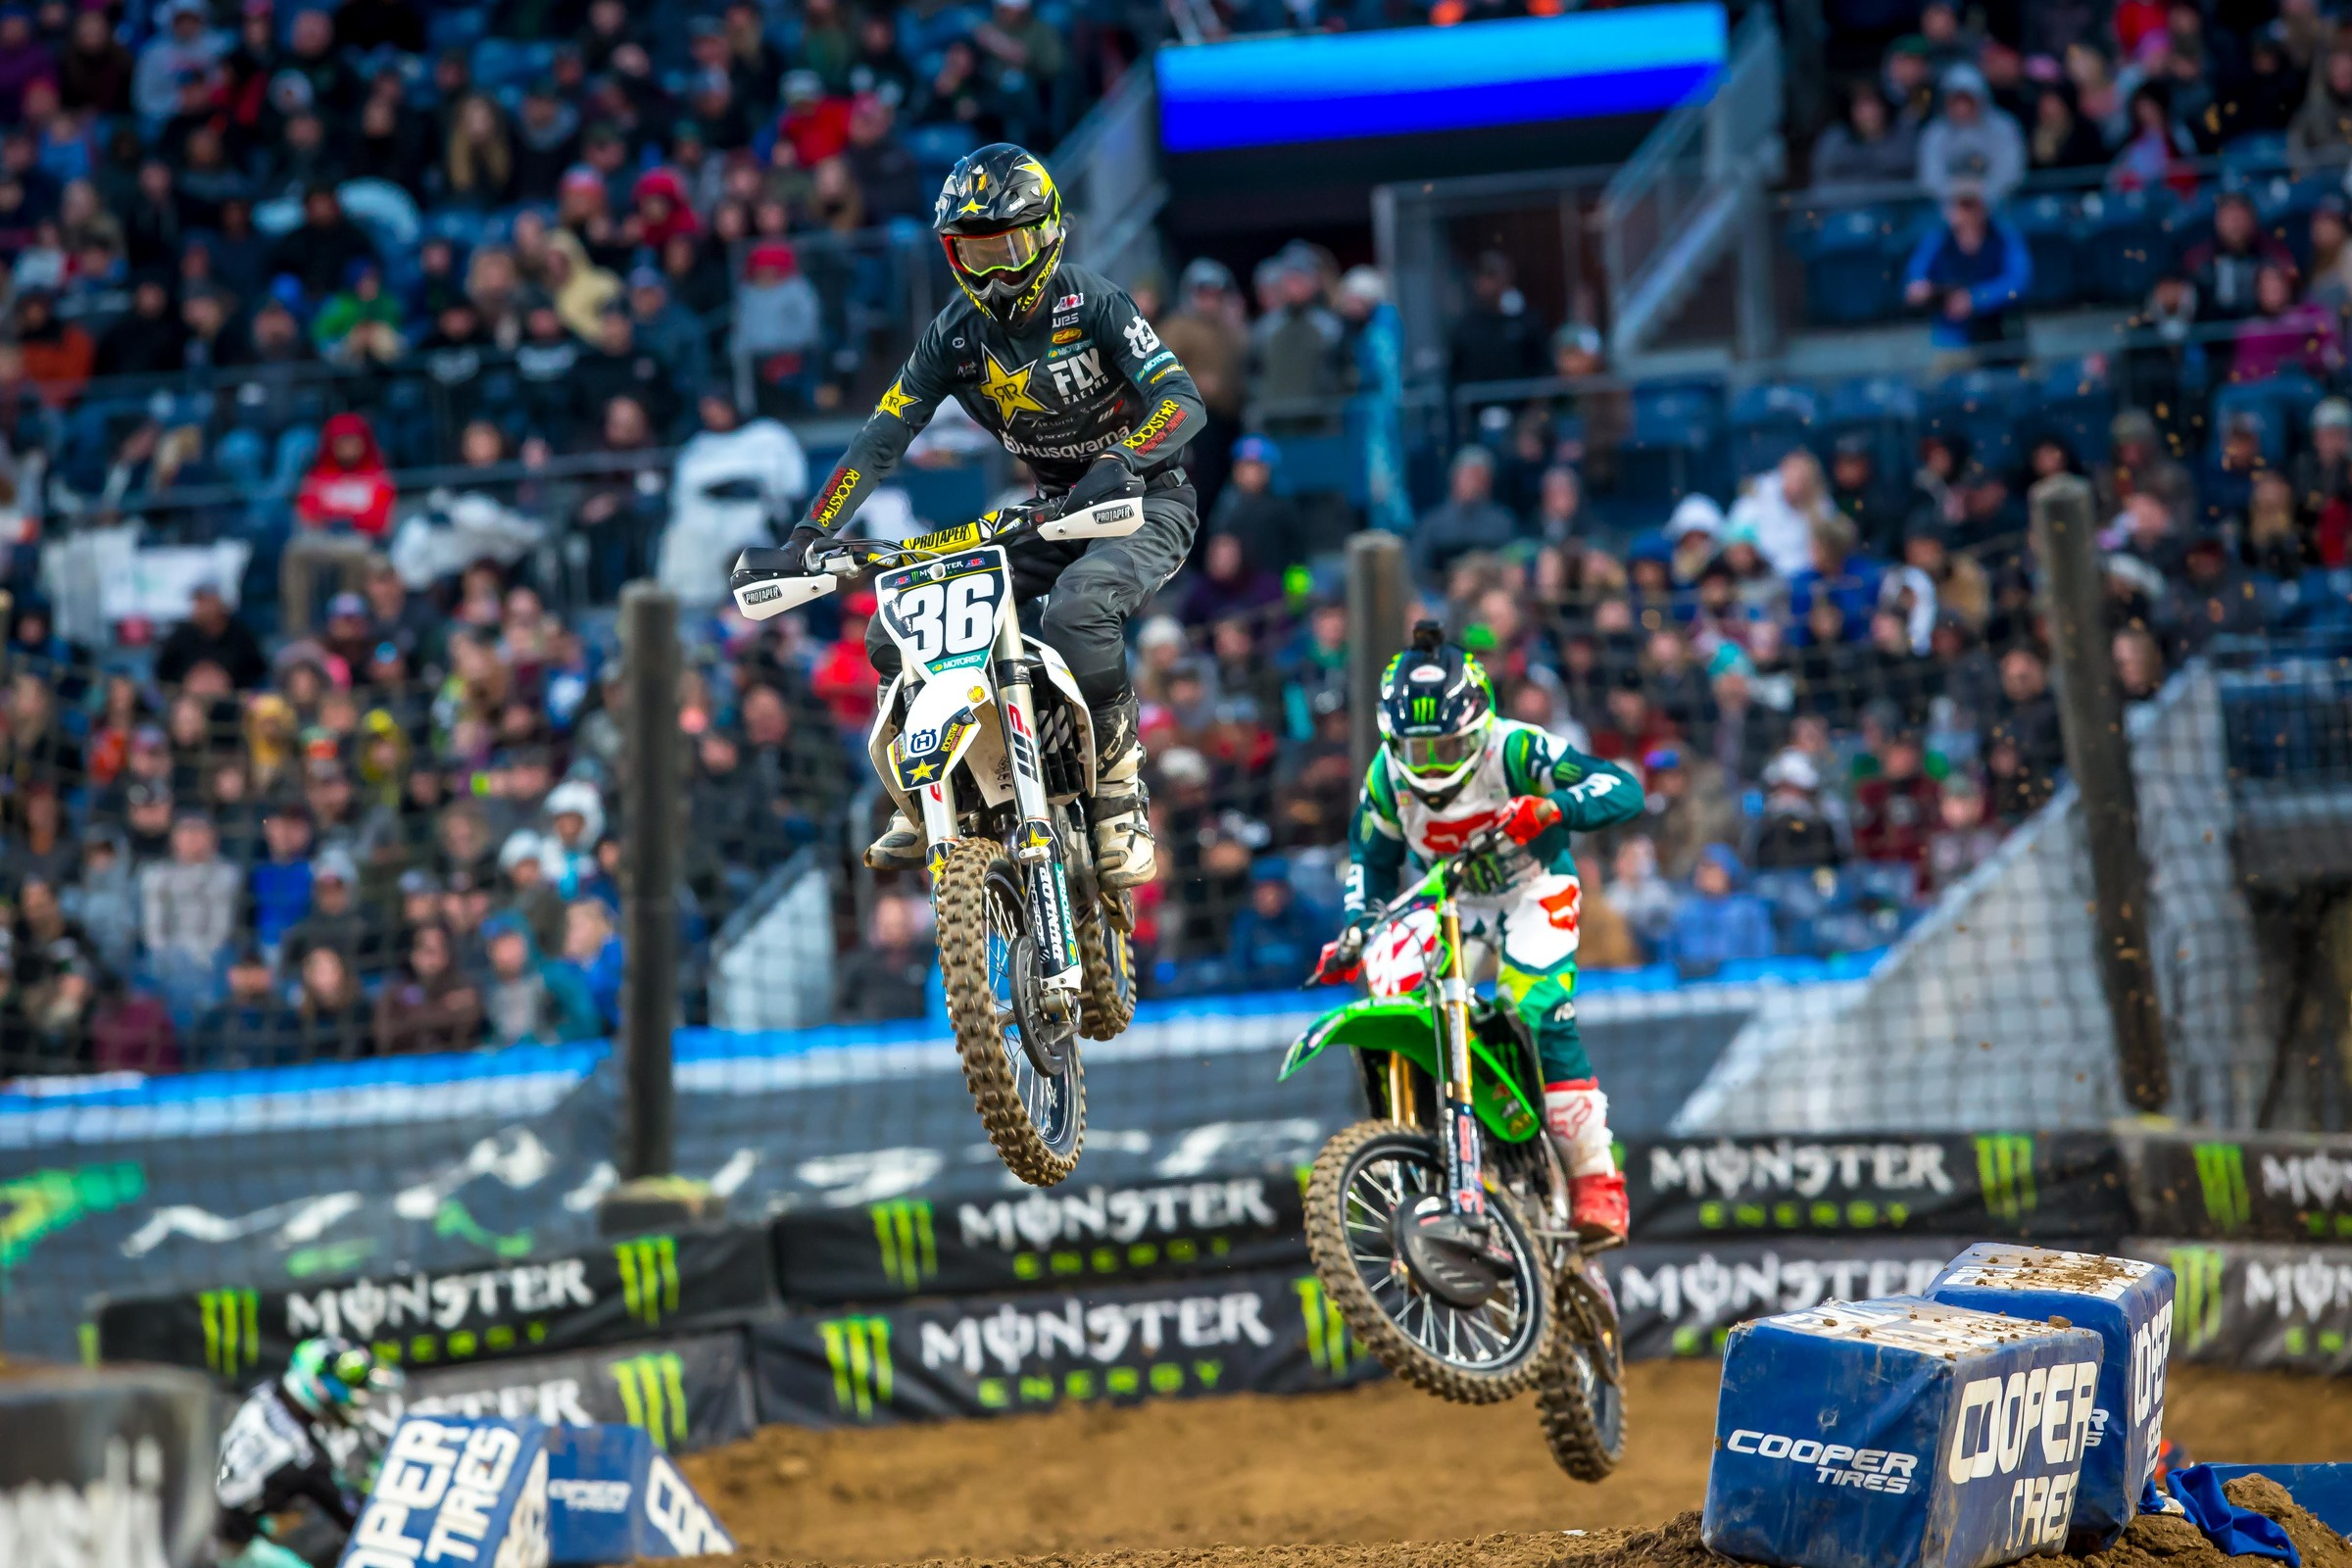 Michael Mosiman put up a heck of a battle with Cianciarulo for the early lead.